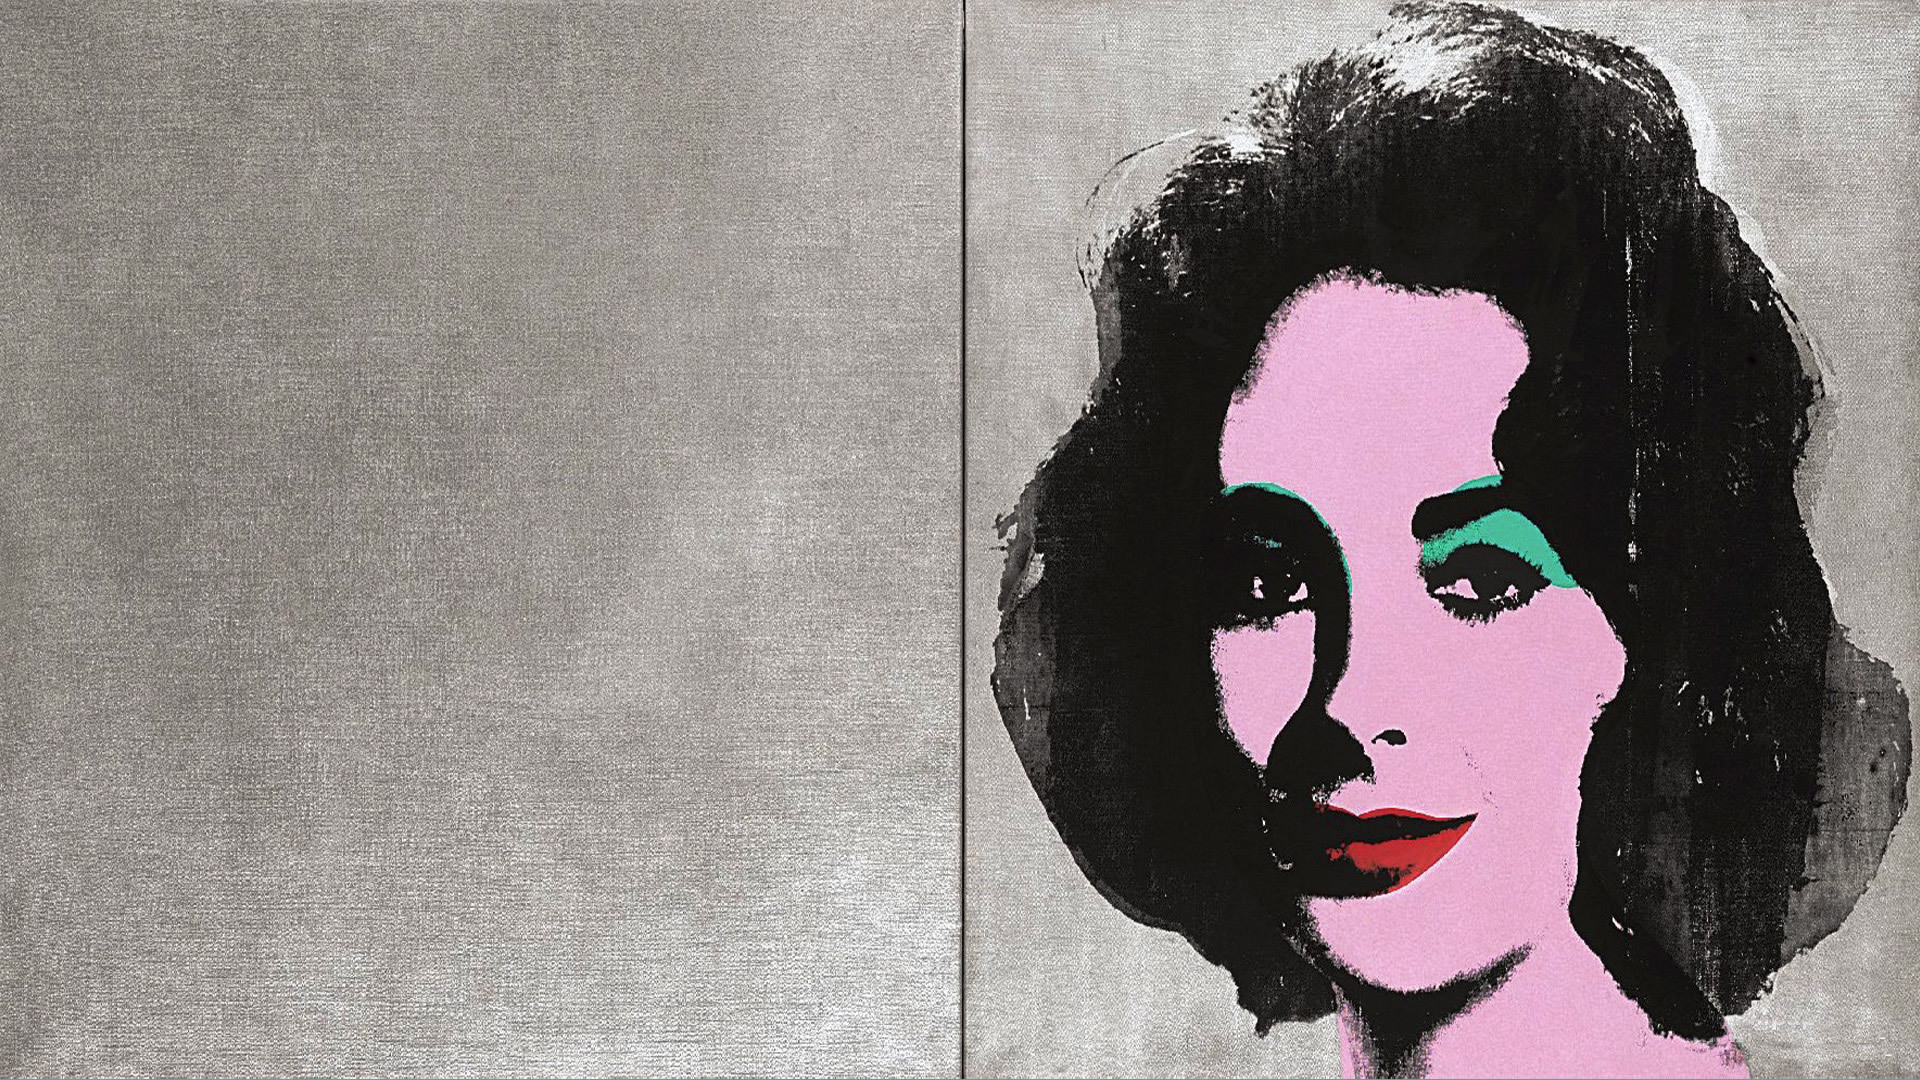 of Andy Warhol pretty woman wallpapers and images   wallpapers 1920x1080